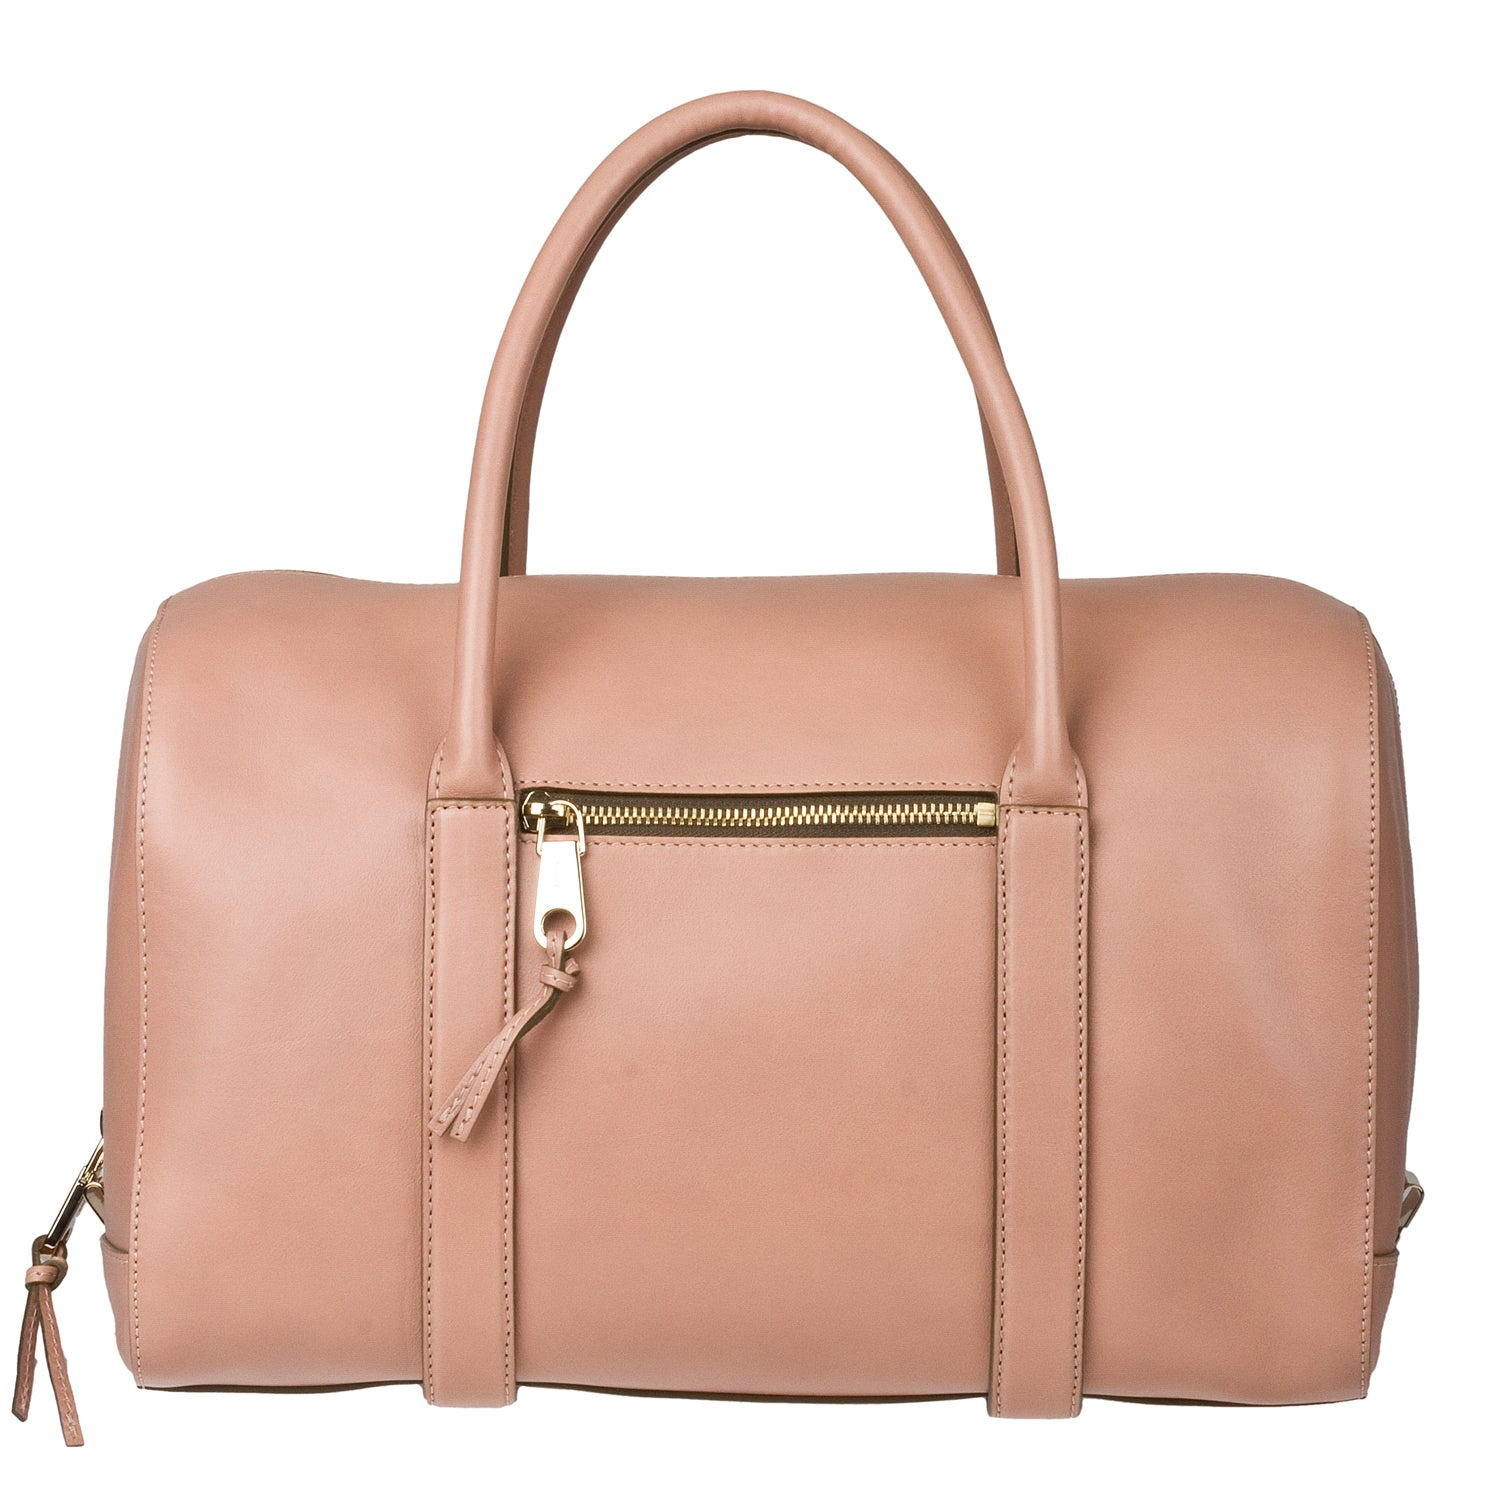 Chloe \u0026#39;Madeleine\u0026#39; Blush Leather Runway Satchel - 14202822 ...